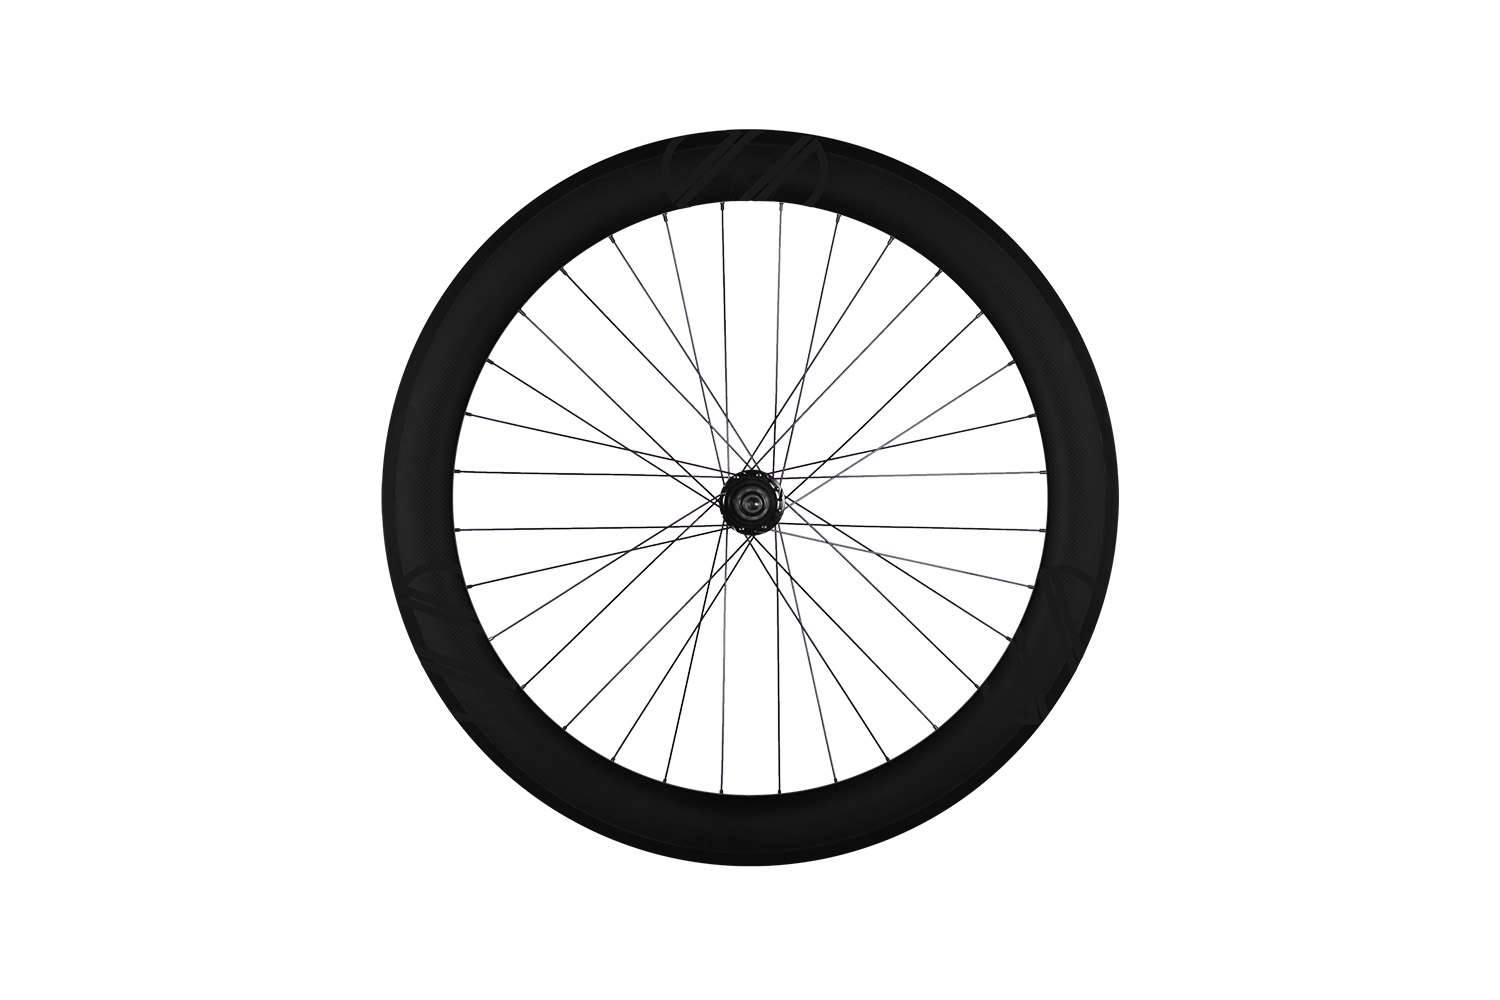 8bar-wheels-ultra-black-rear-fixie-fixedgear